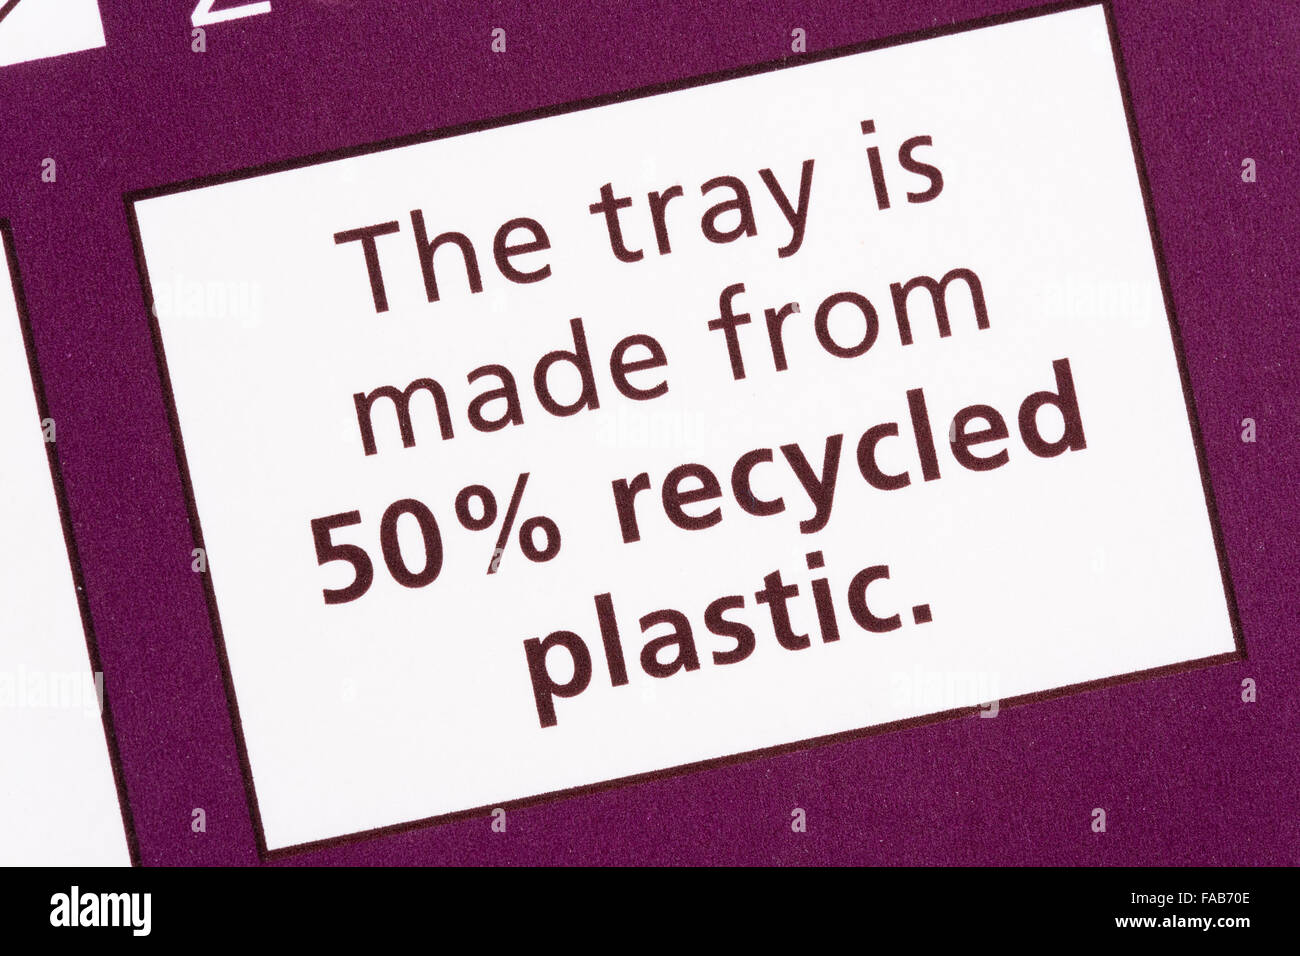 recycled plastic - Stock Image